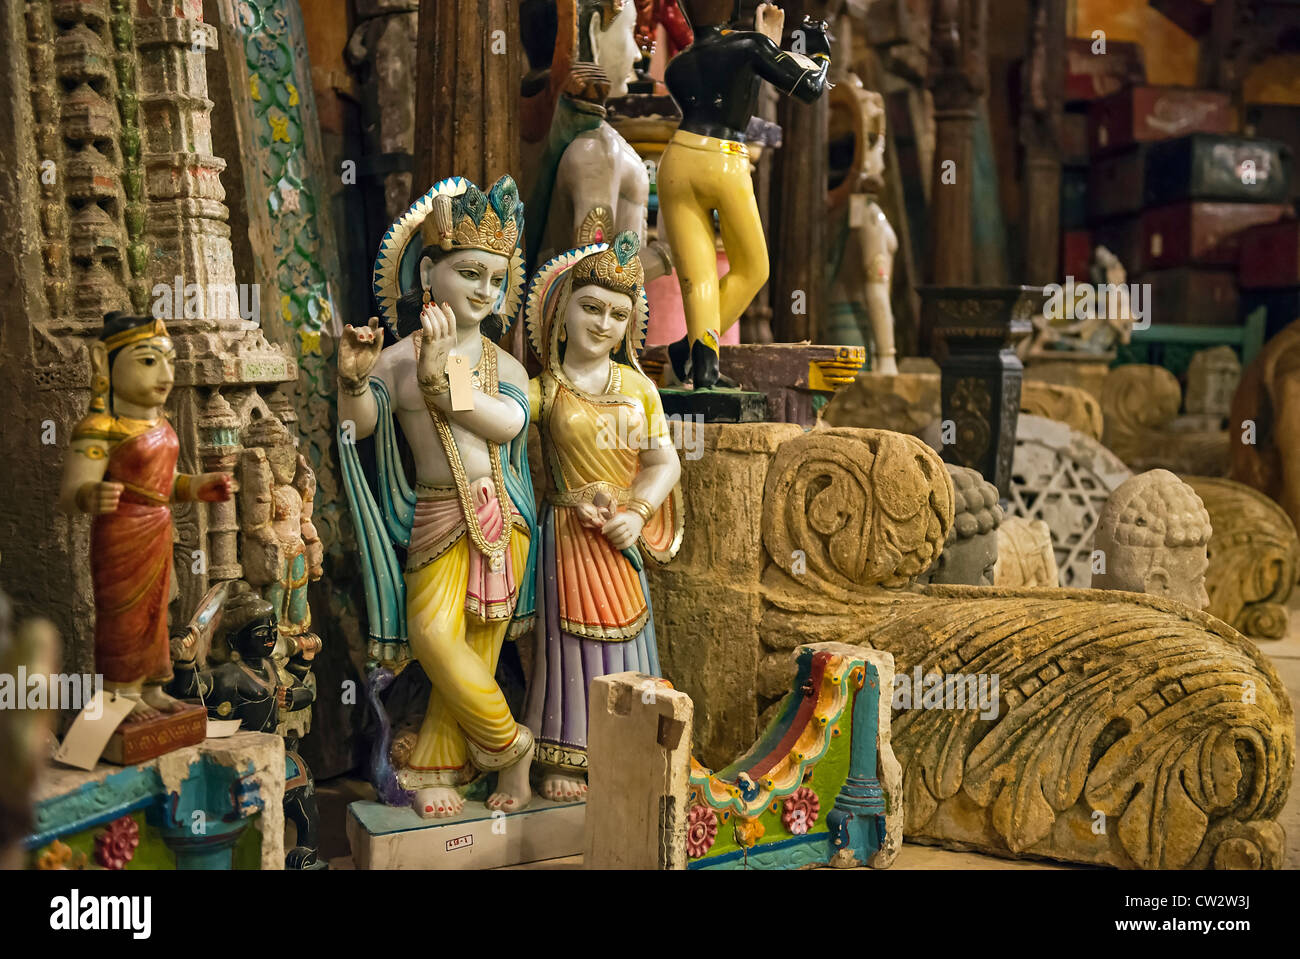 Imported artifacts and decorative items from India. Stock Photo